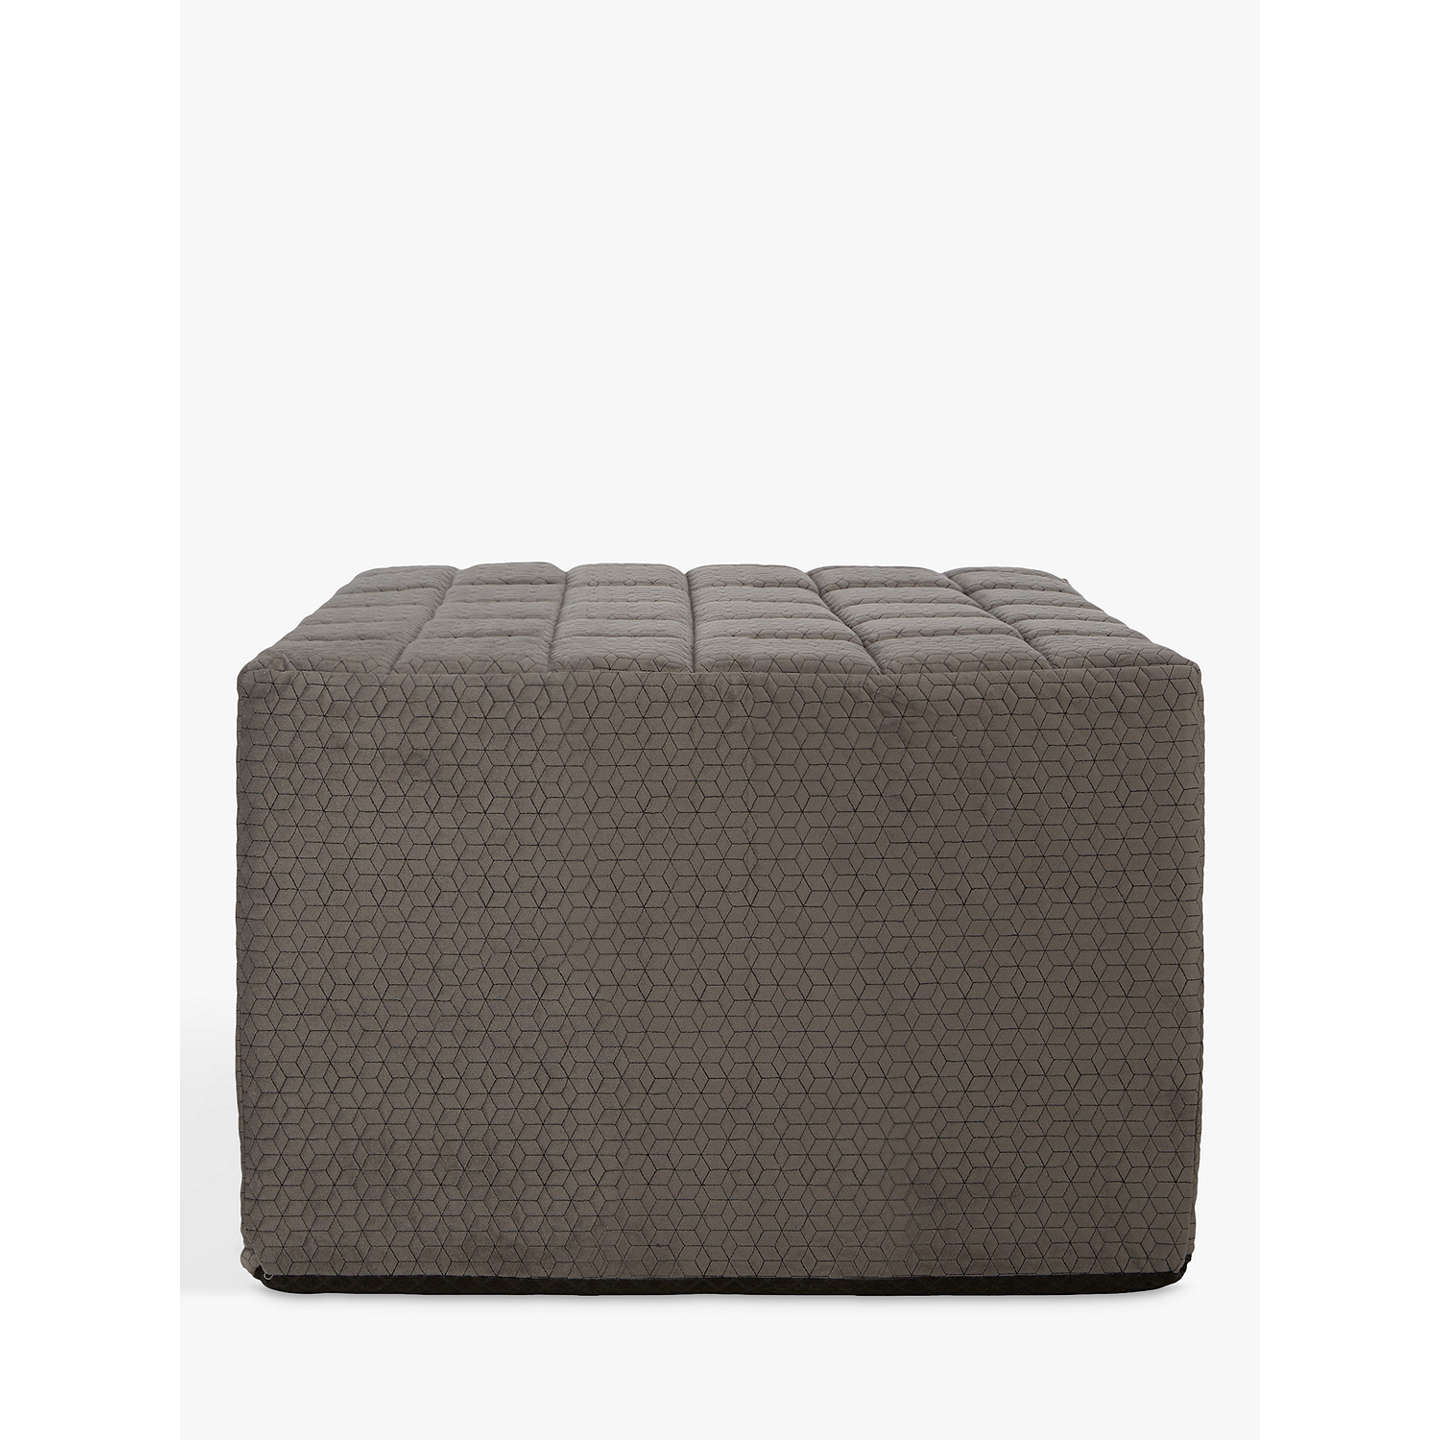 single sofa bed. BuyHouse By John Lewis Kix Single Sofa Bed With Foam Mattress, Stitch Charcoal Online At D